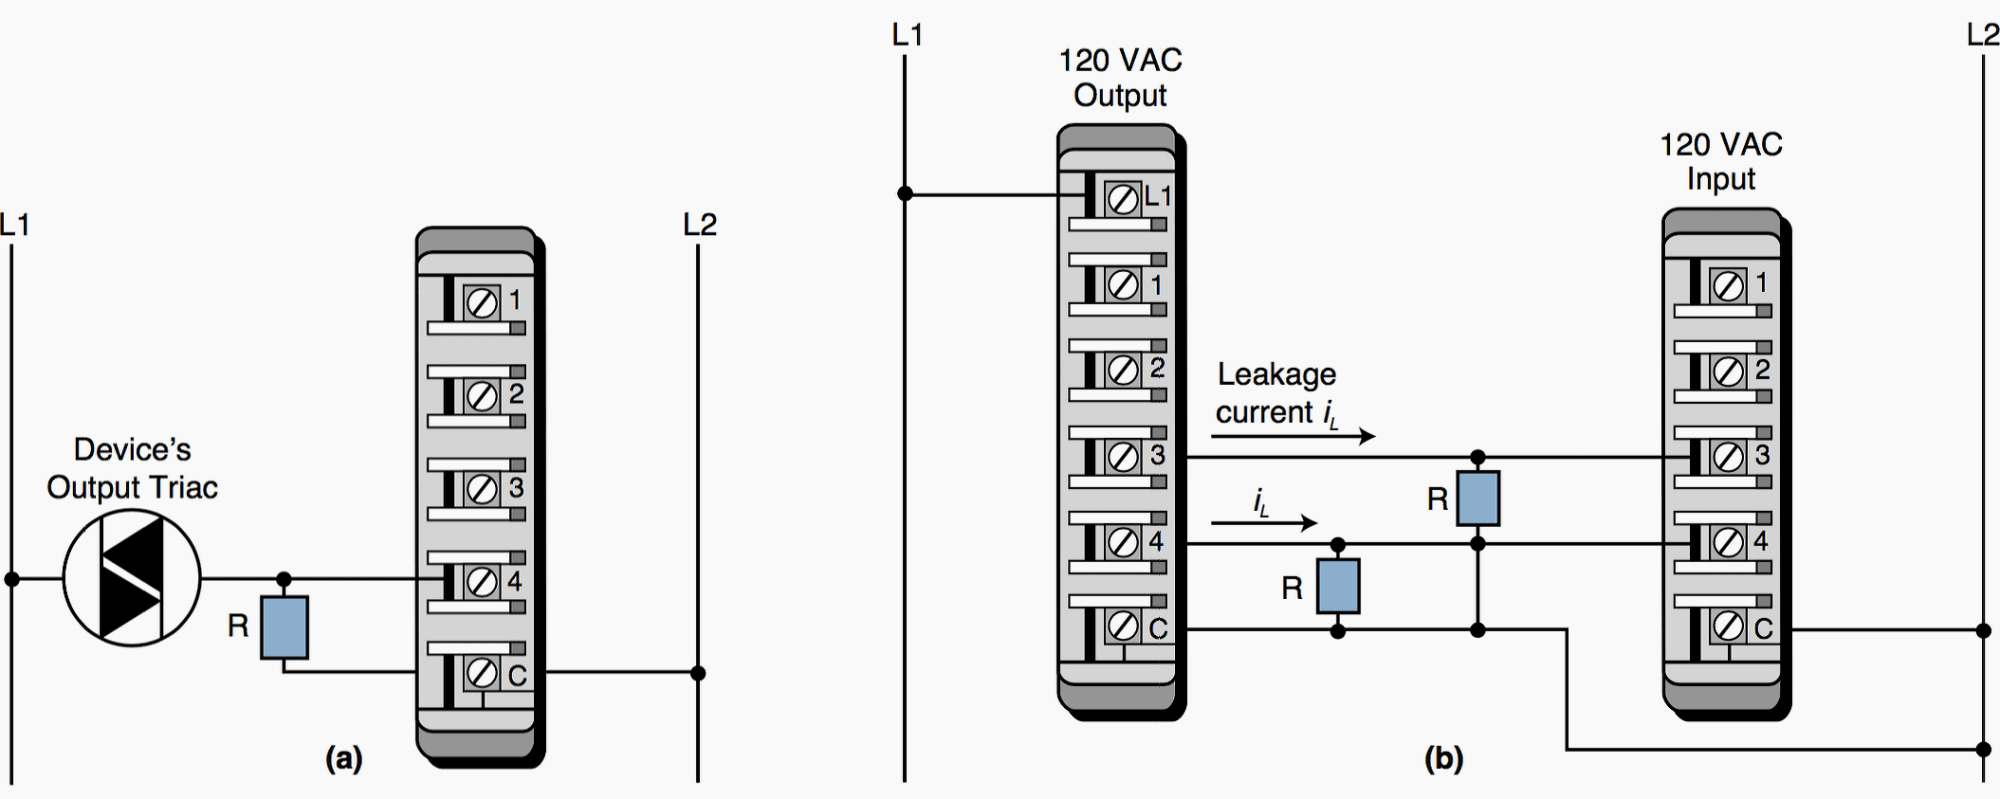 hight resolution of input card wiring further plc inputs and outputs on plc input card wiring diagram show